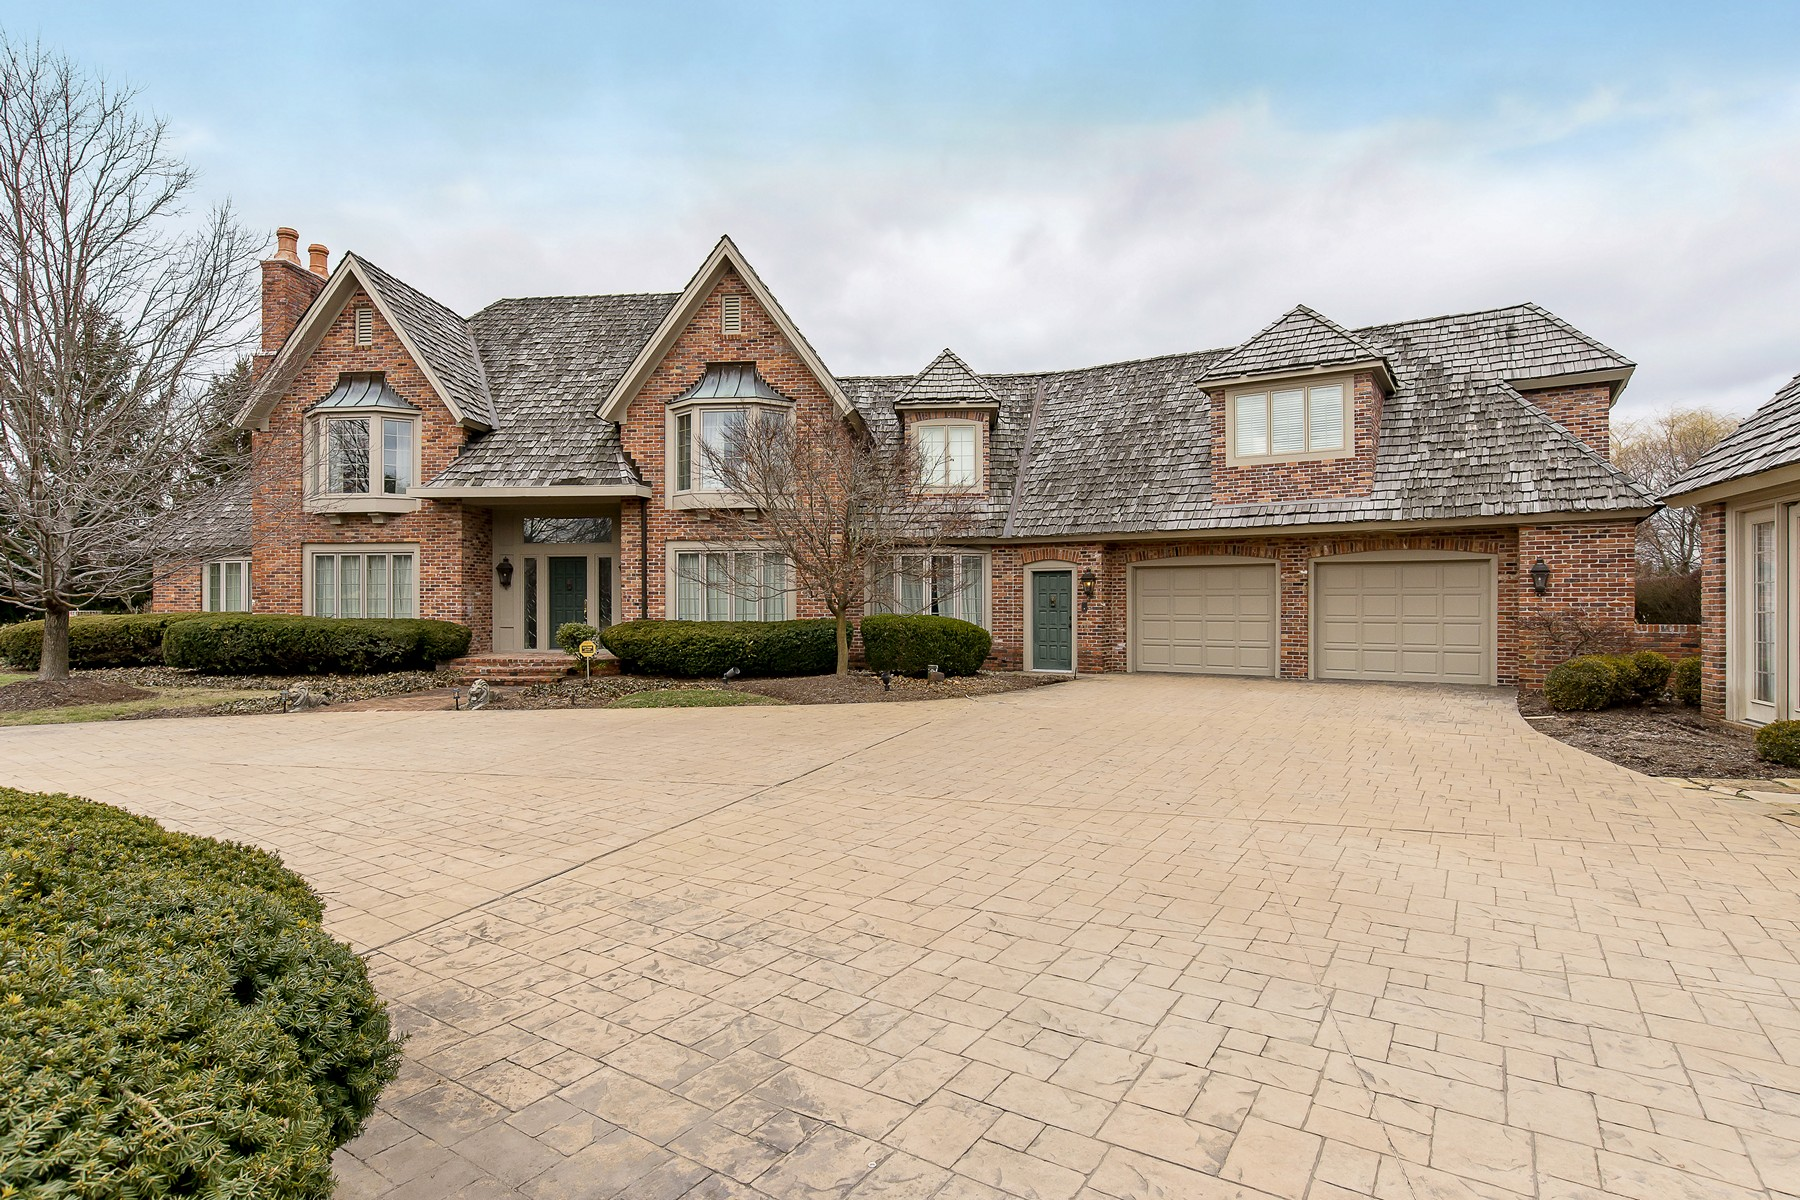 Single Family Home for Sale at Sought after Crooked Stick Home 11284 Crooked Stick Lane, Carmel, Indiana, 46032 United States